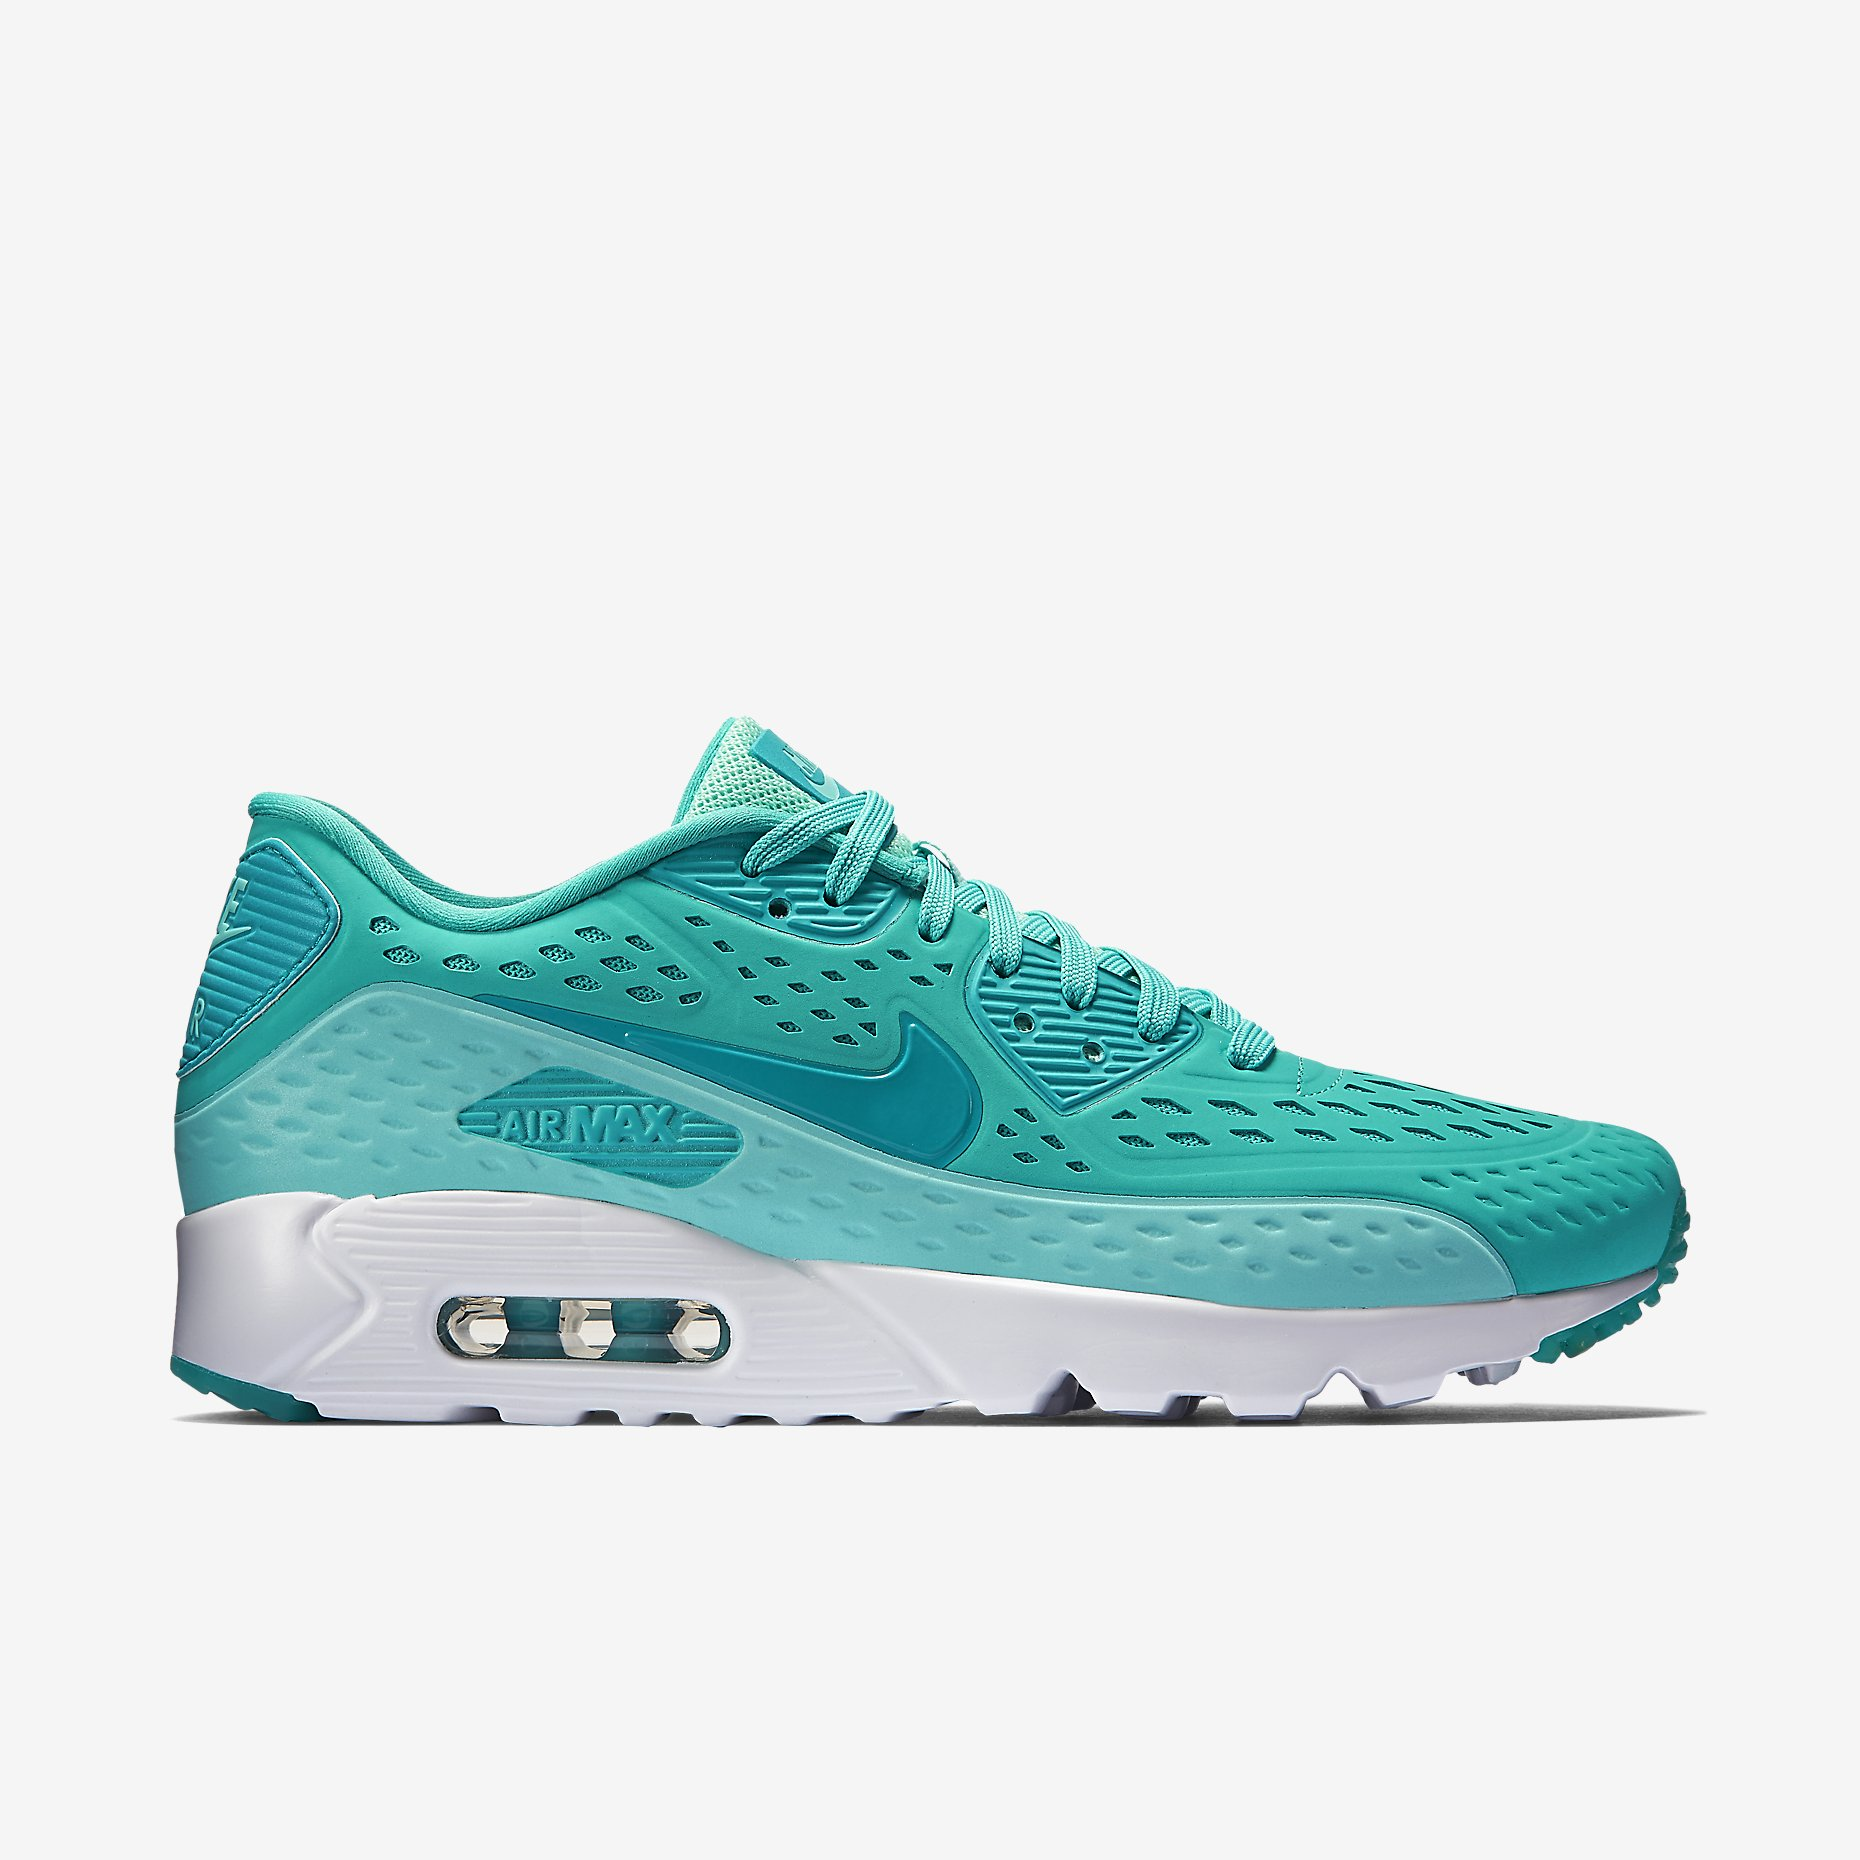 new styles 8f653 b55b1 Nike Air Max 90 Ultra BR Color  Light Retro Artisan Teal-White-Turbo Green  Style  725222-403. Price   130.00